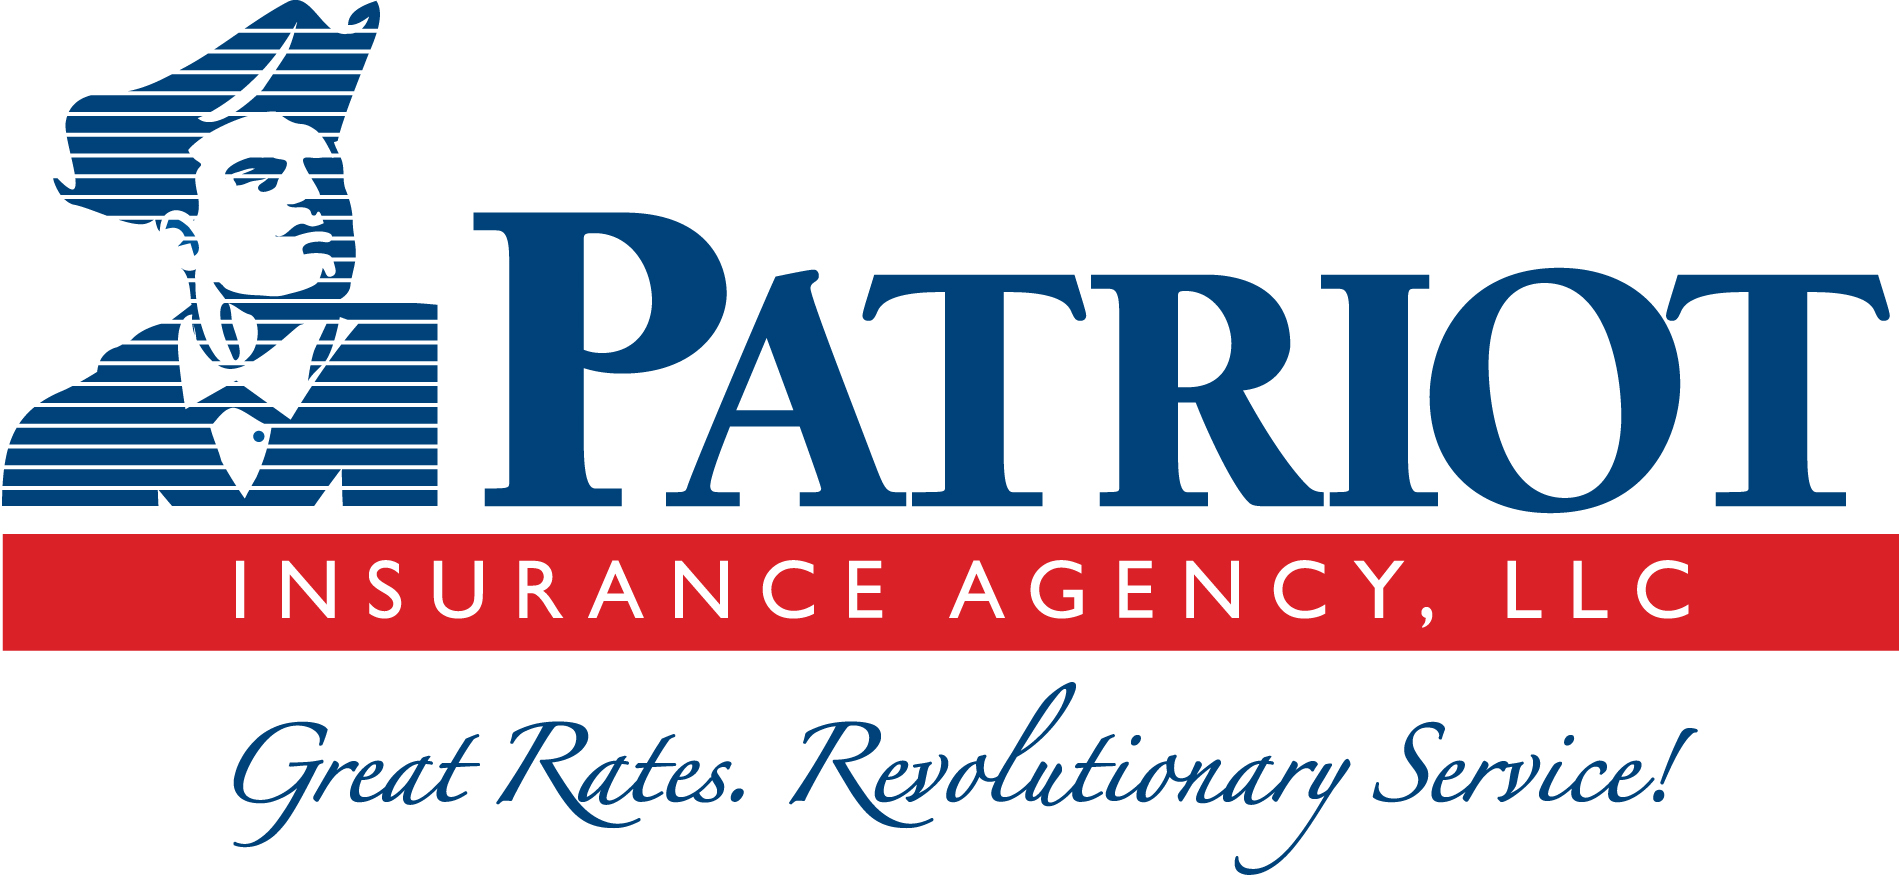 Patriot Insurance Agency, LLC logo